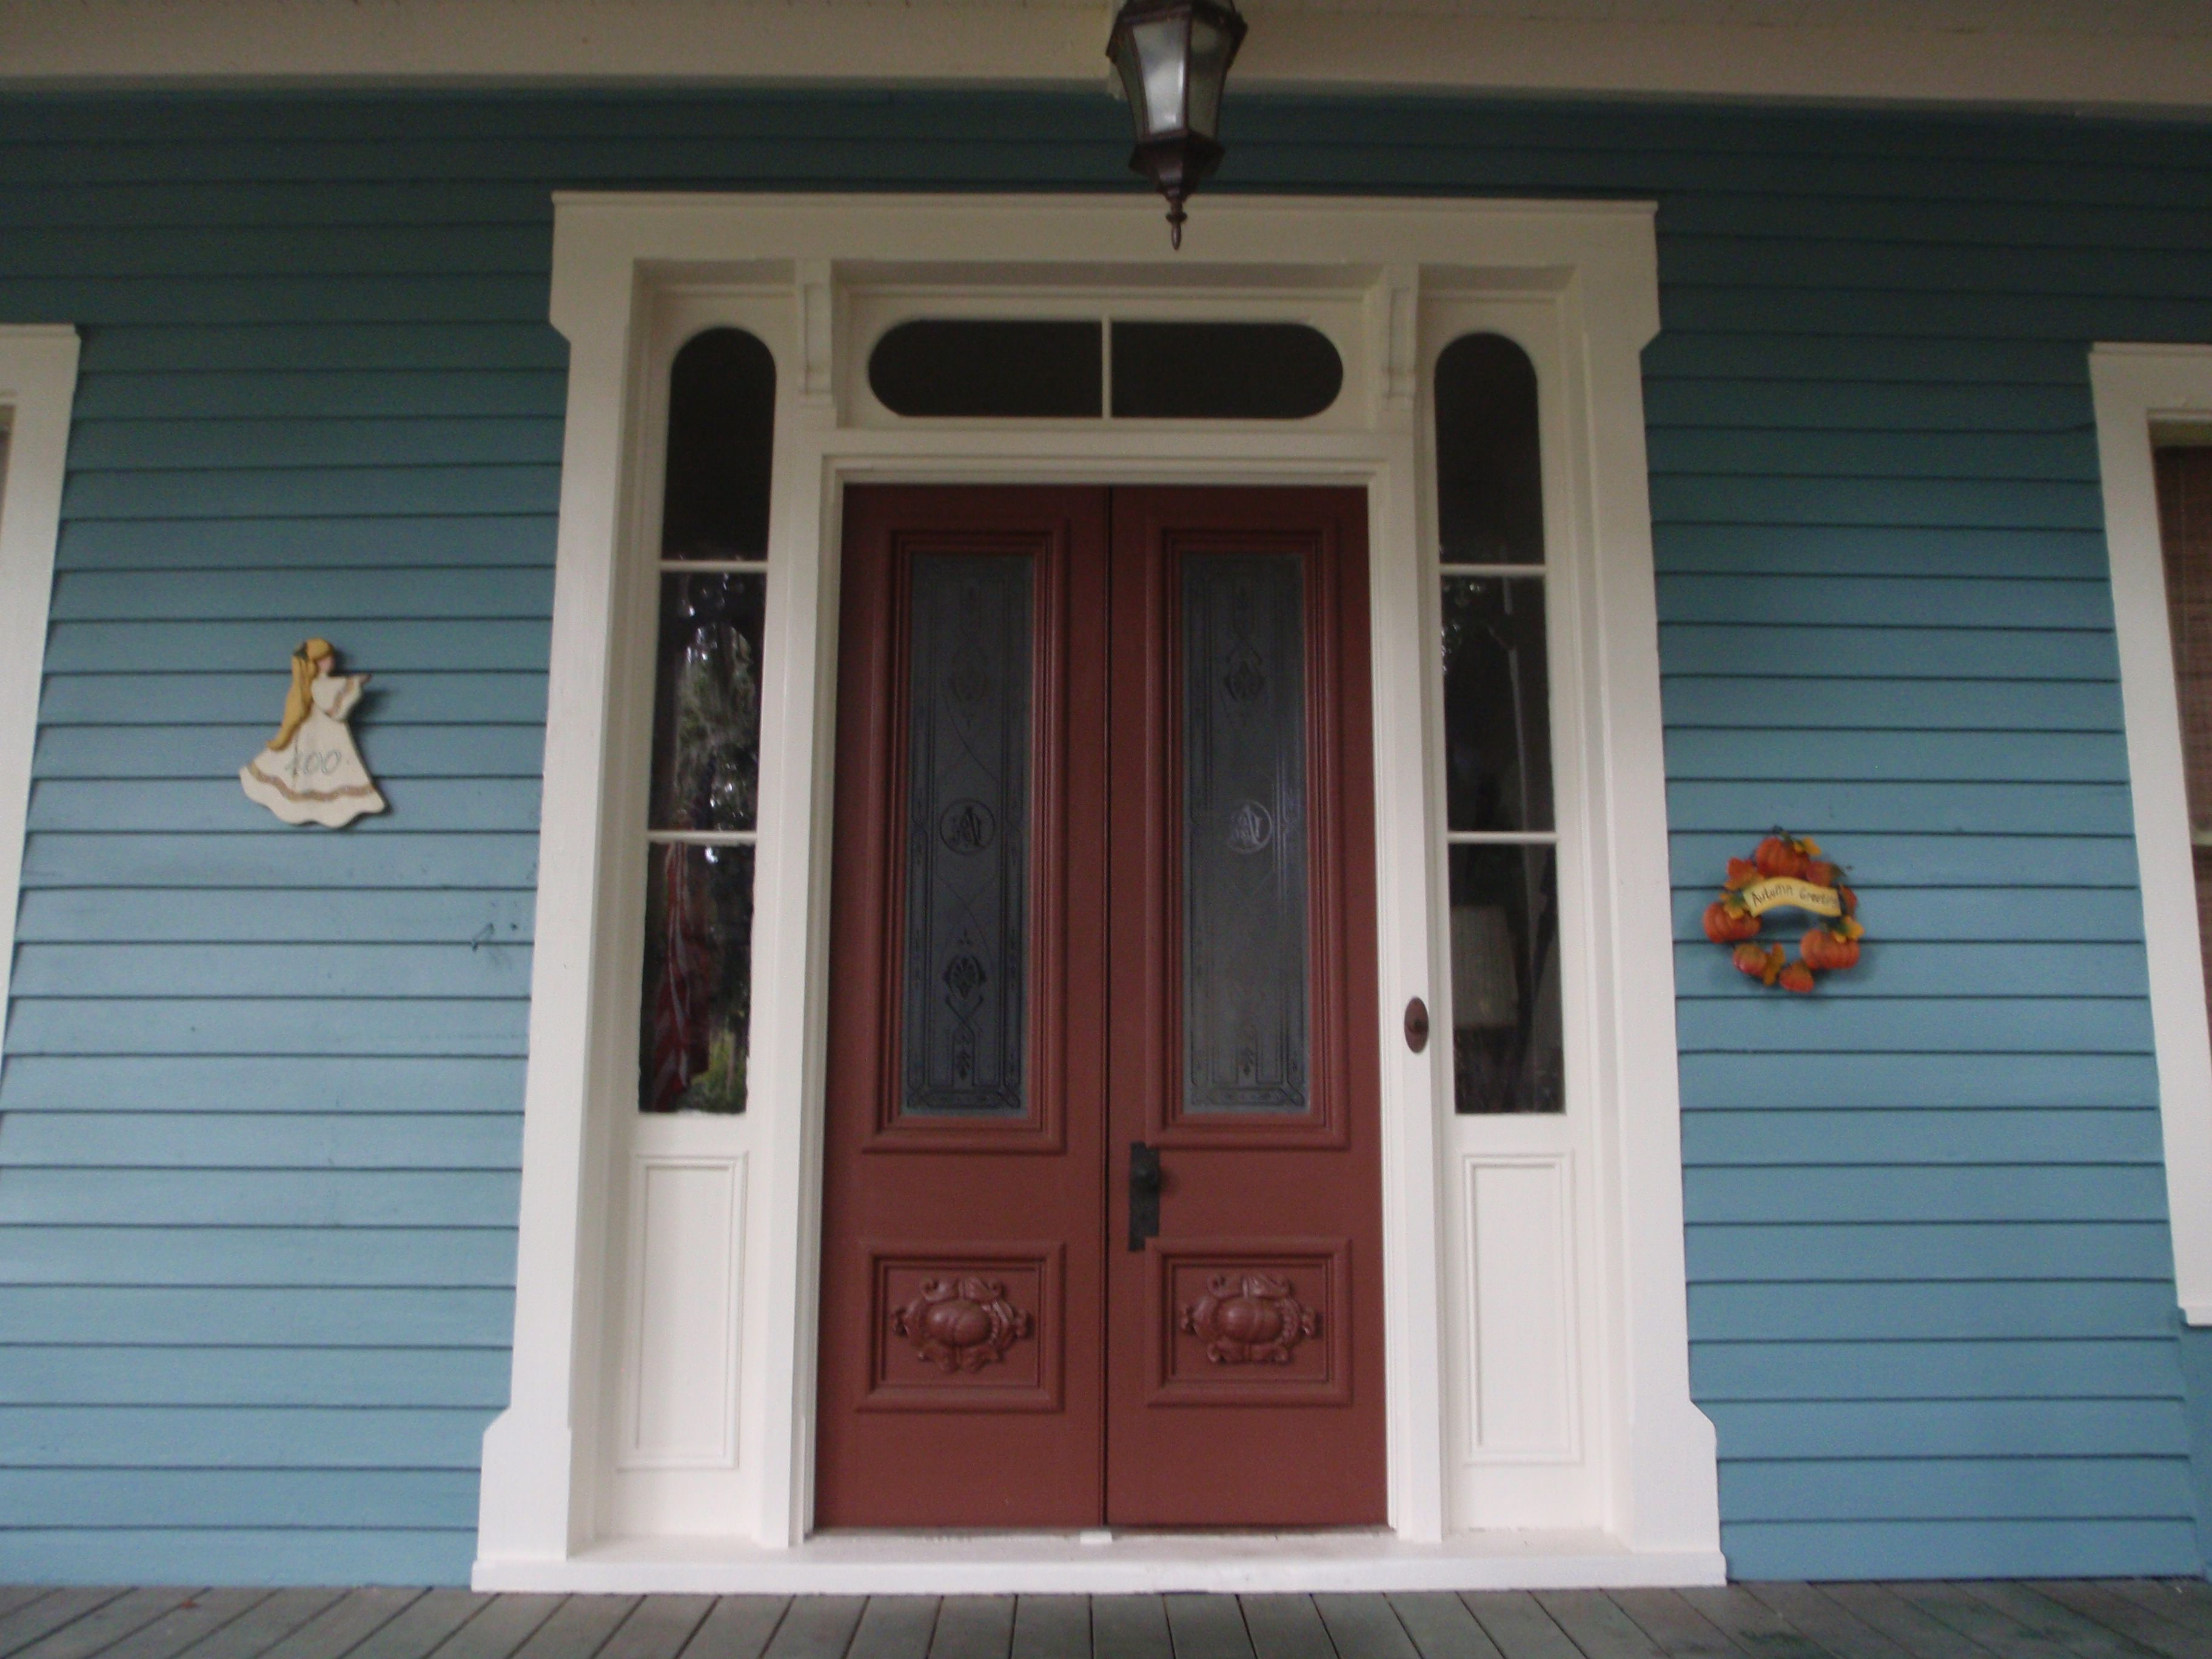 Enchanting white front door trim for double swing half glass brown